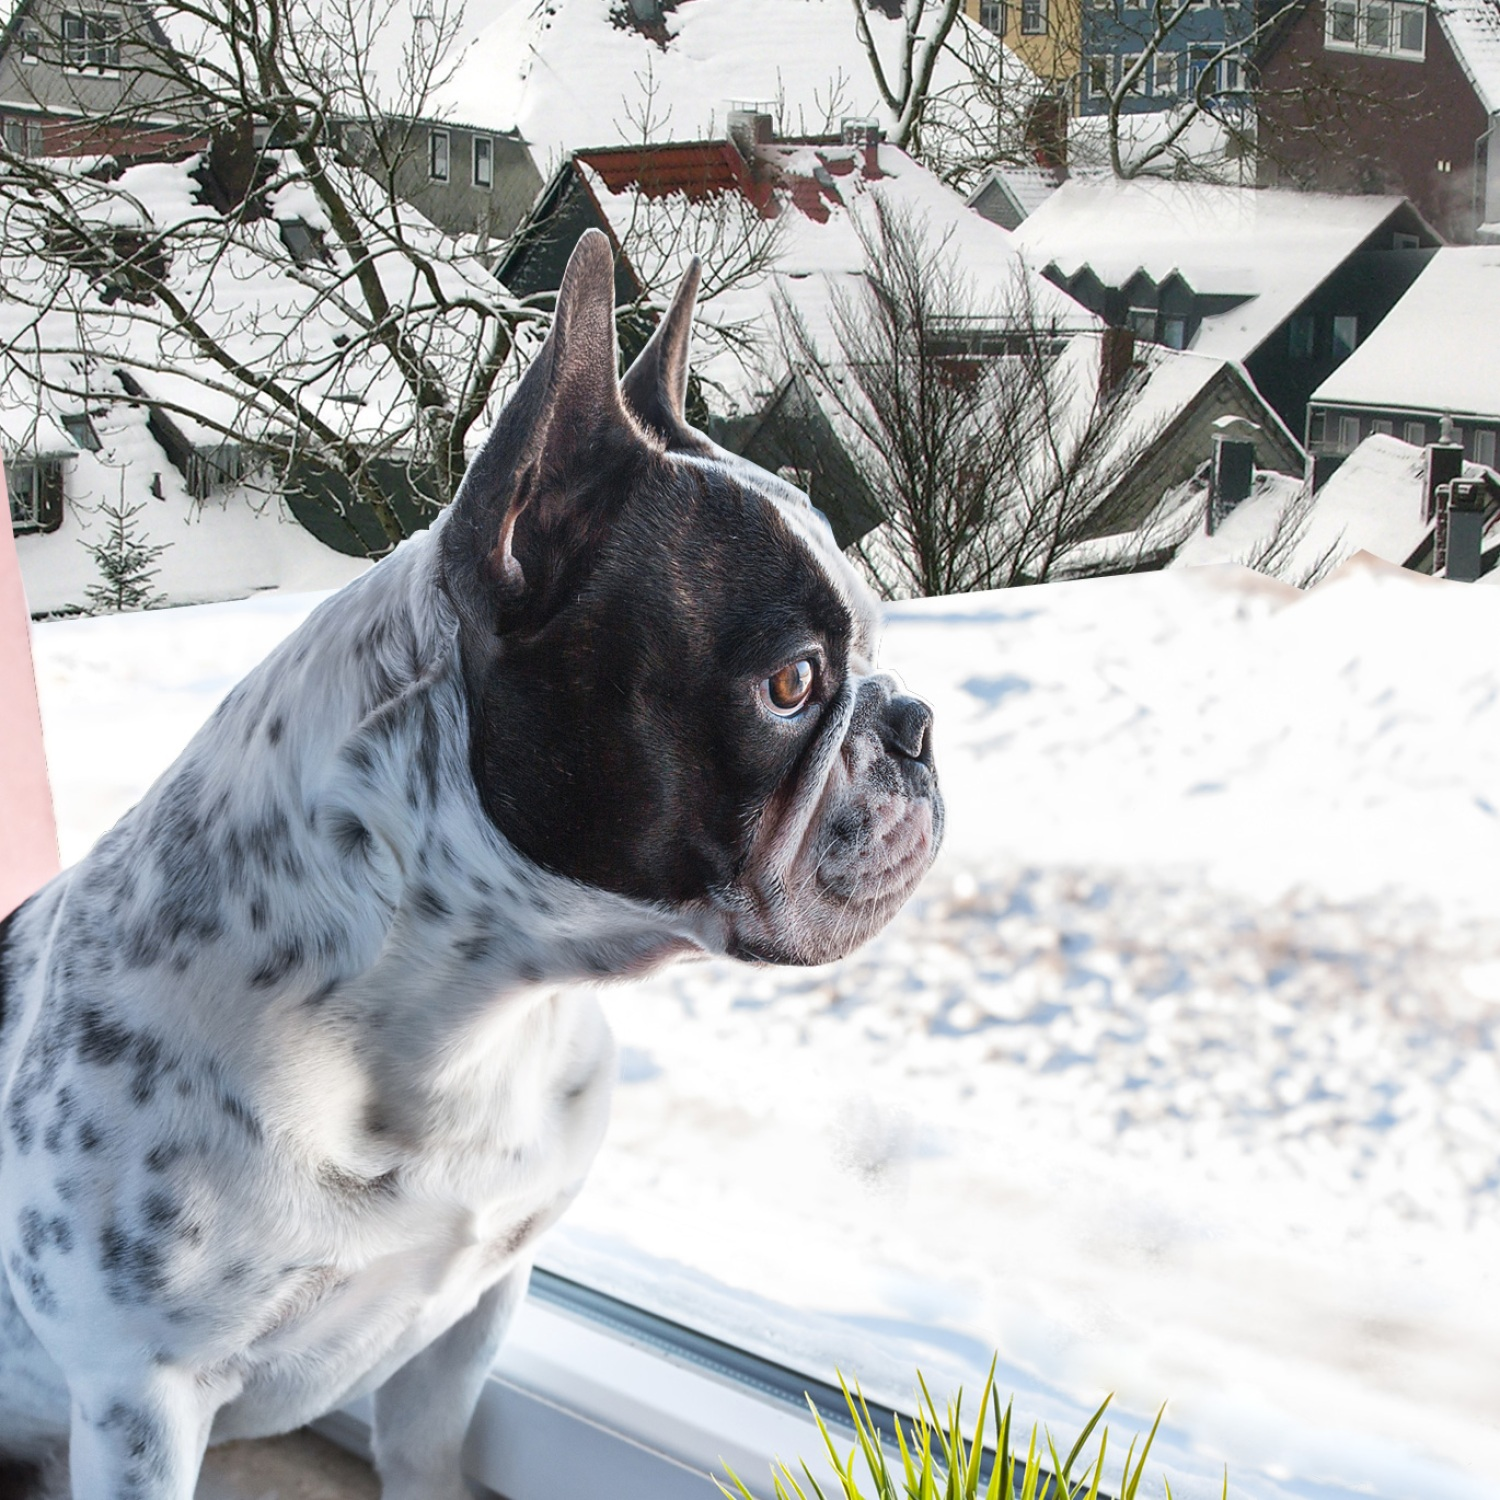 Dog looking out the window onto a snowy town